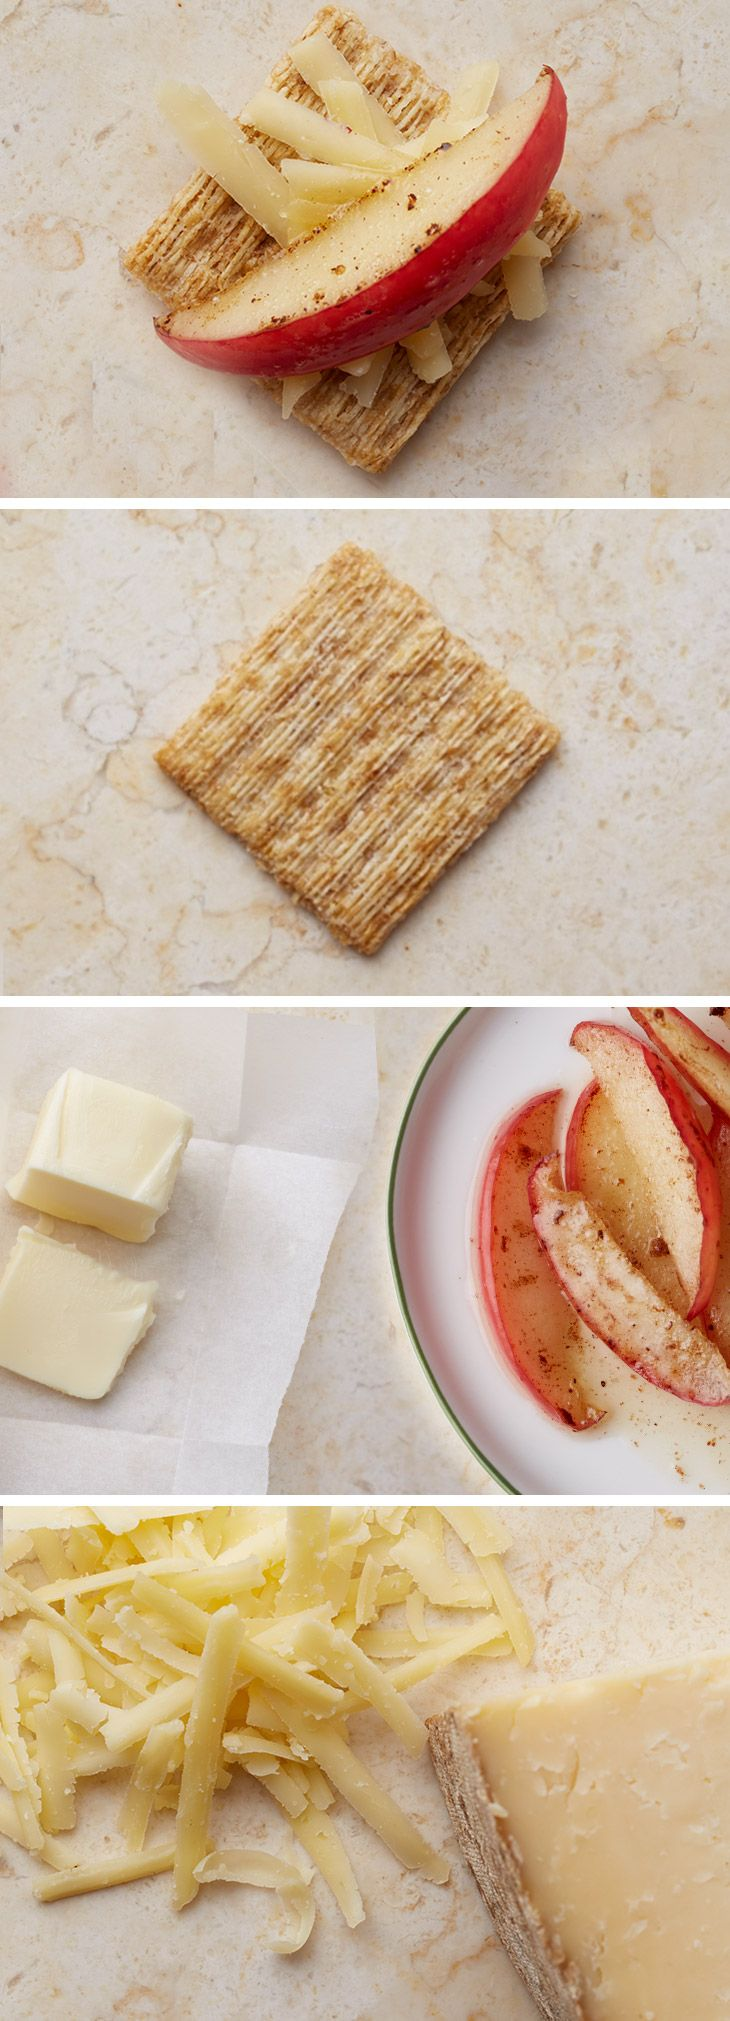 We're all about pairing unexpected ingredients this year. And this is one of our favorites—a twist on the classic apple pie. Top a Triscuit with shredded white cheddar cheese and apples caramelized in butter and brown sugar. Place under the broiler for 5 minutes or until melted. Enjoy as a quick anytime snack or a not so sweet ending to a meal. The bupplechedscuit. For more snacking inspiration, check out our Triscuit boards.